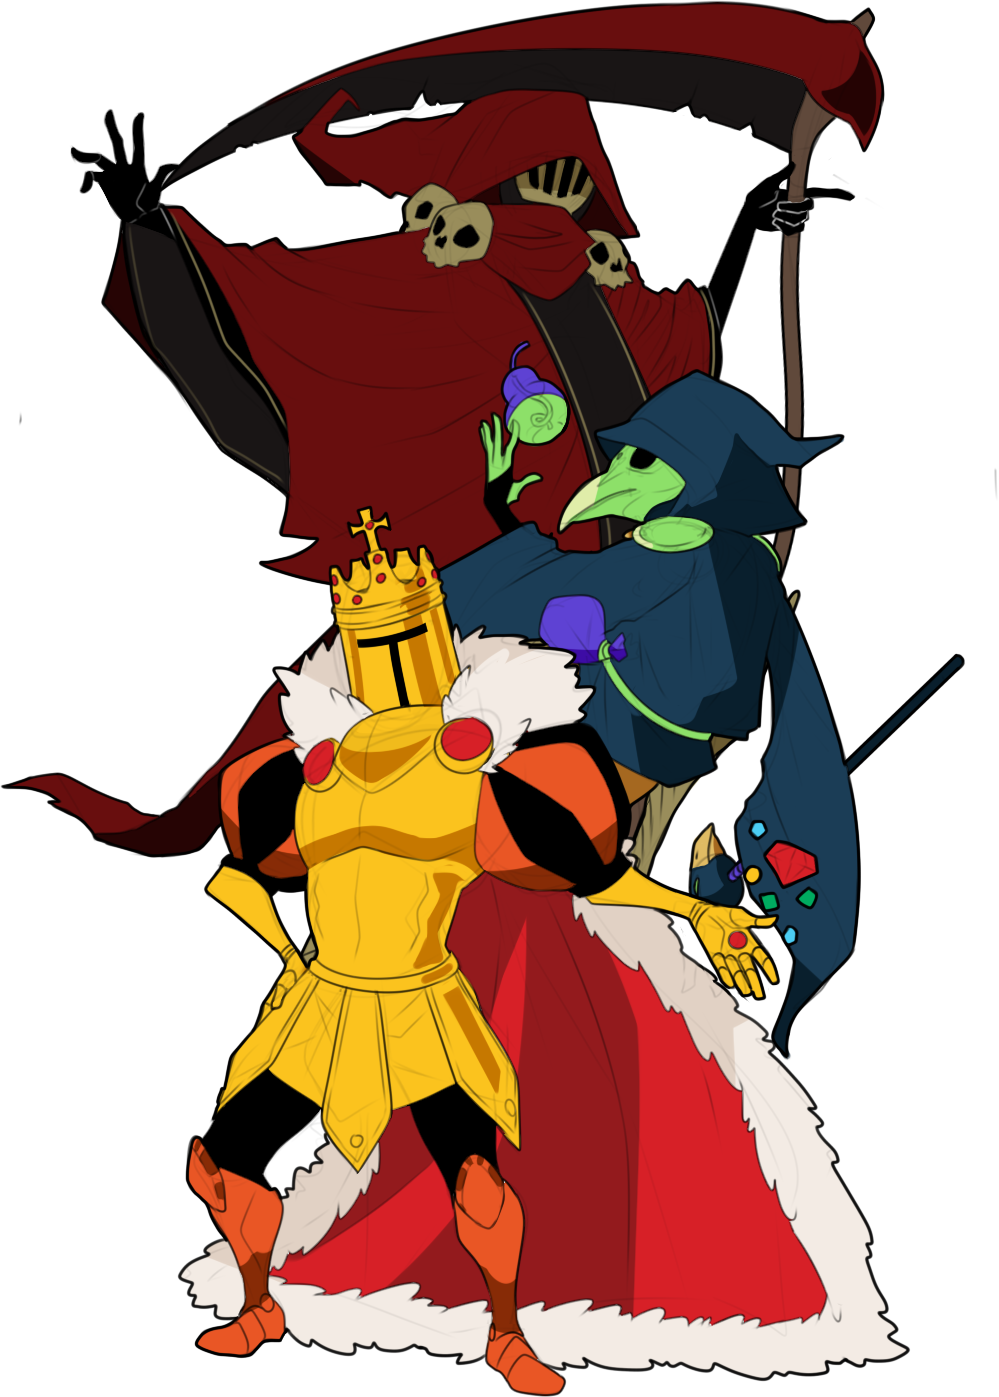 picture royalty free Knights clipart altar. Shovel knight fan art